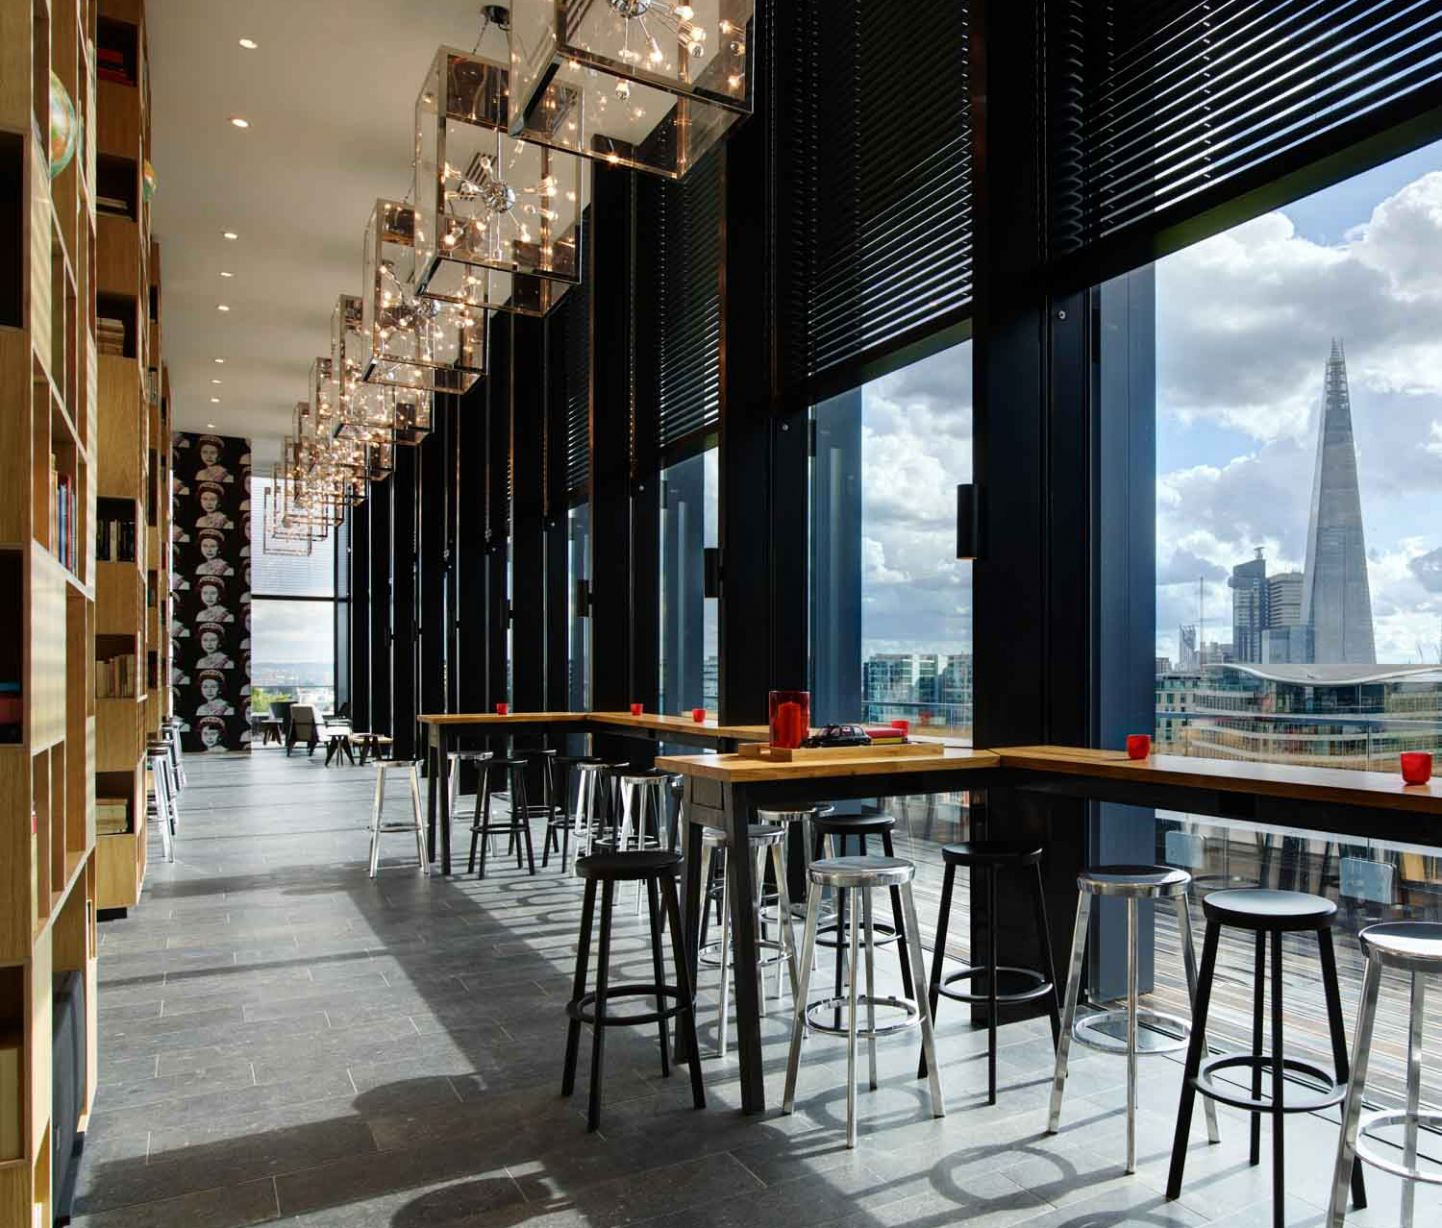 renegade-generation-discover-you-masterclass-mid-career-workshop-citizenm-london-7.jpg